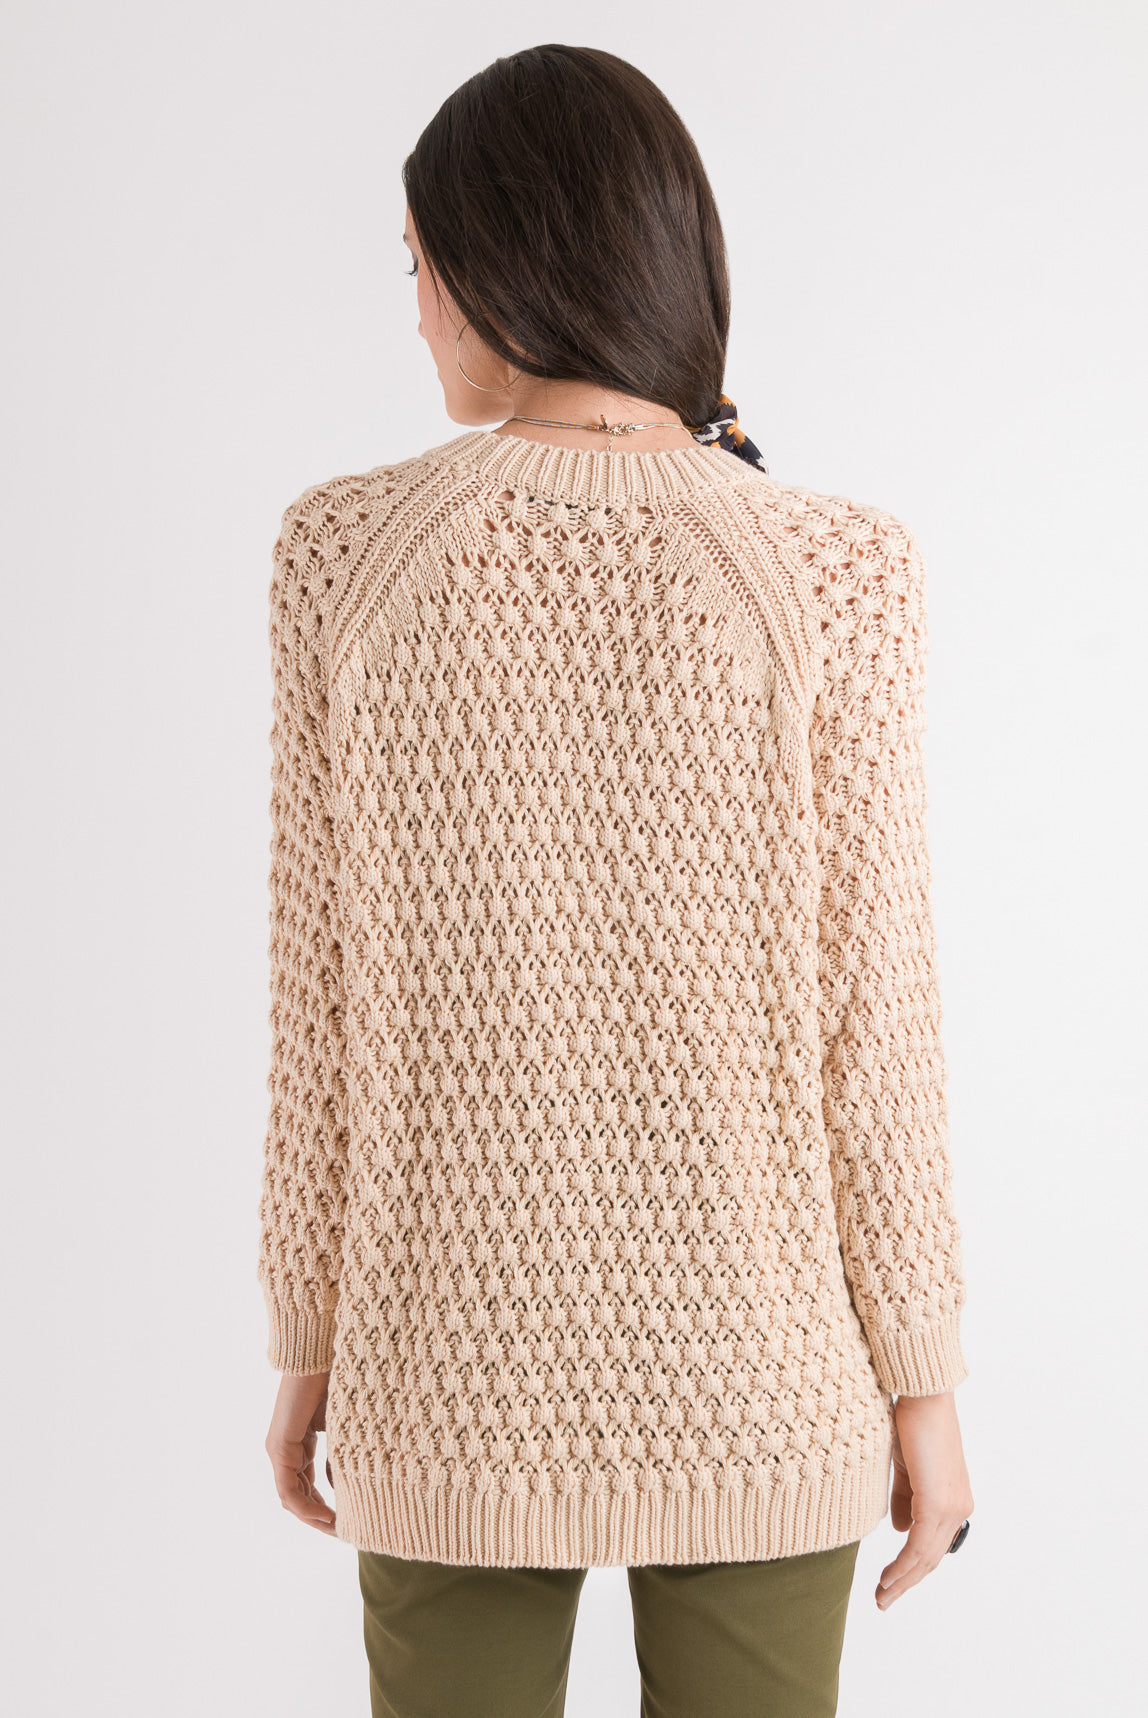 Waffle Sweater - Biscuit